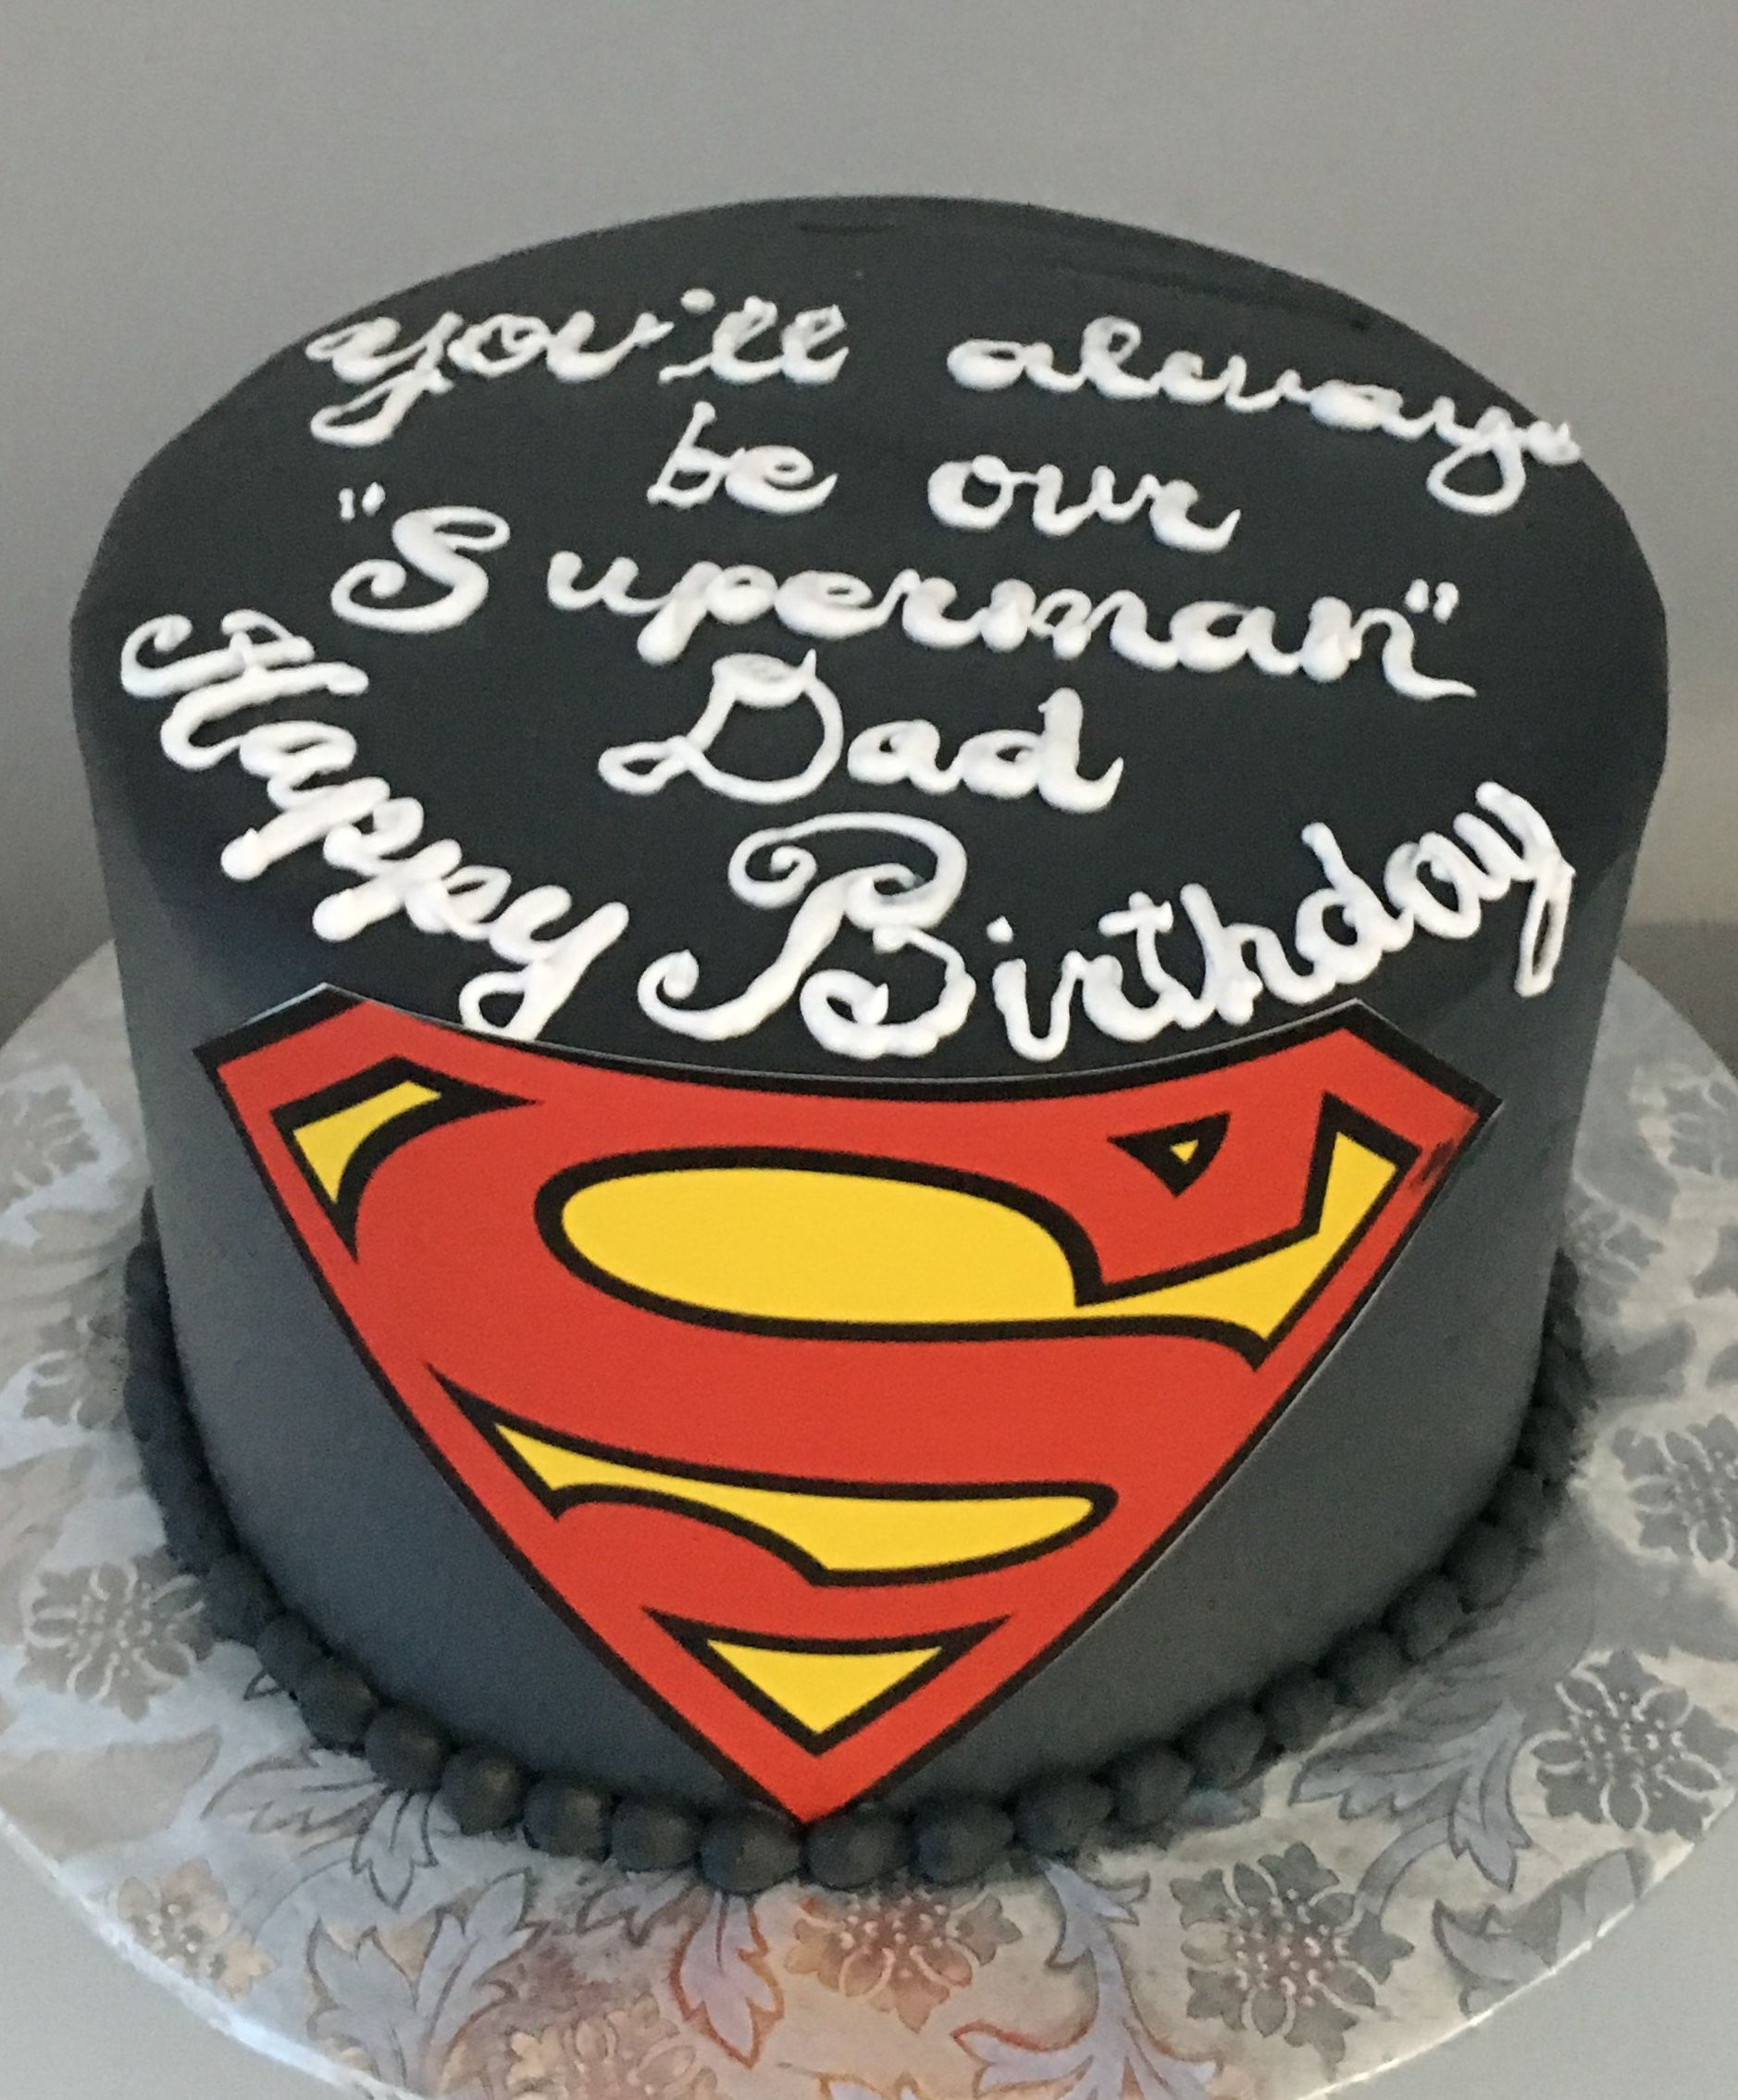 Super Dad With Images Dad Birthday Cakes Birthday Cakes For